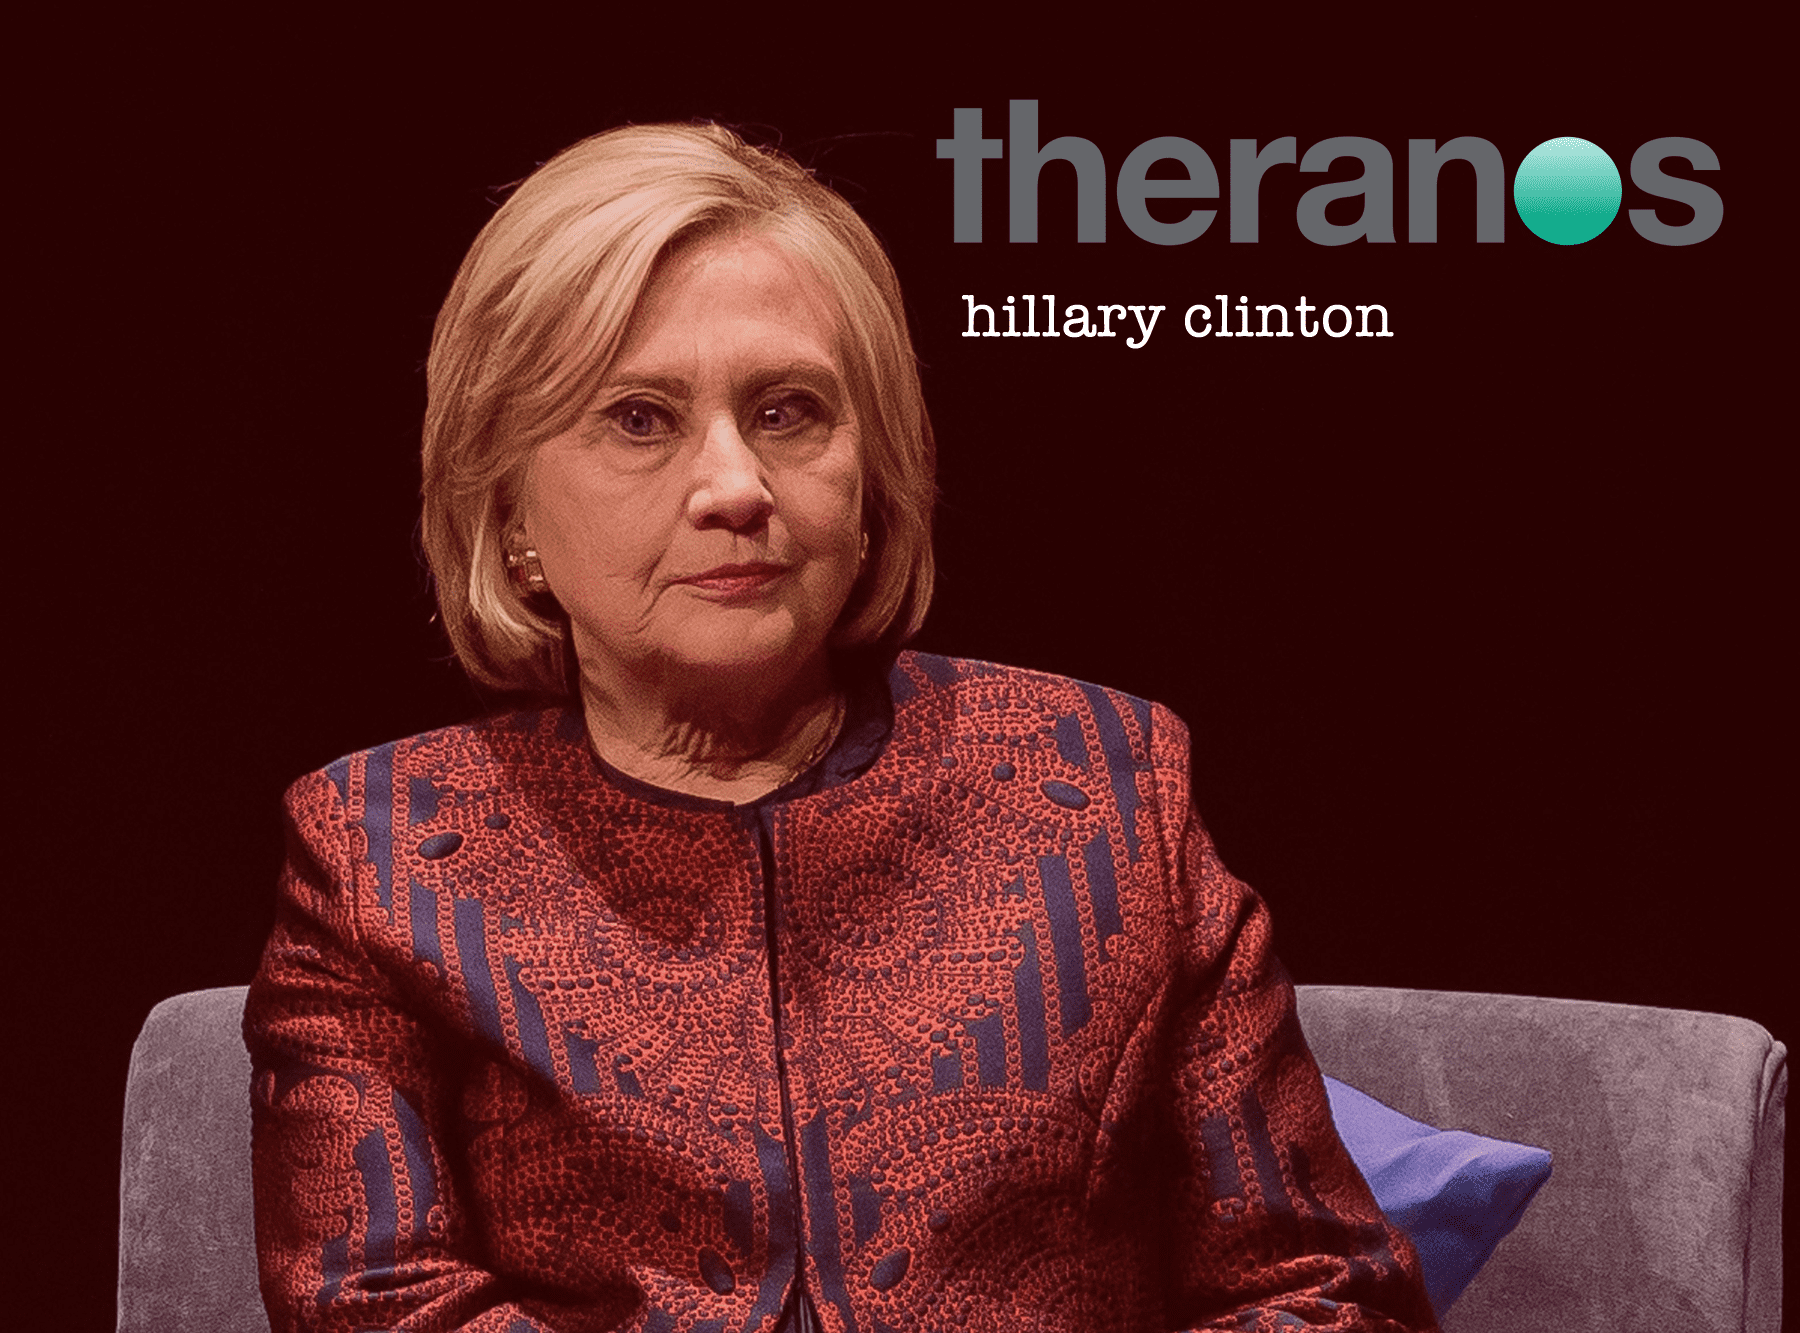 hillary clinton theranos vampire blood-cult christians